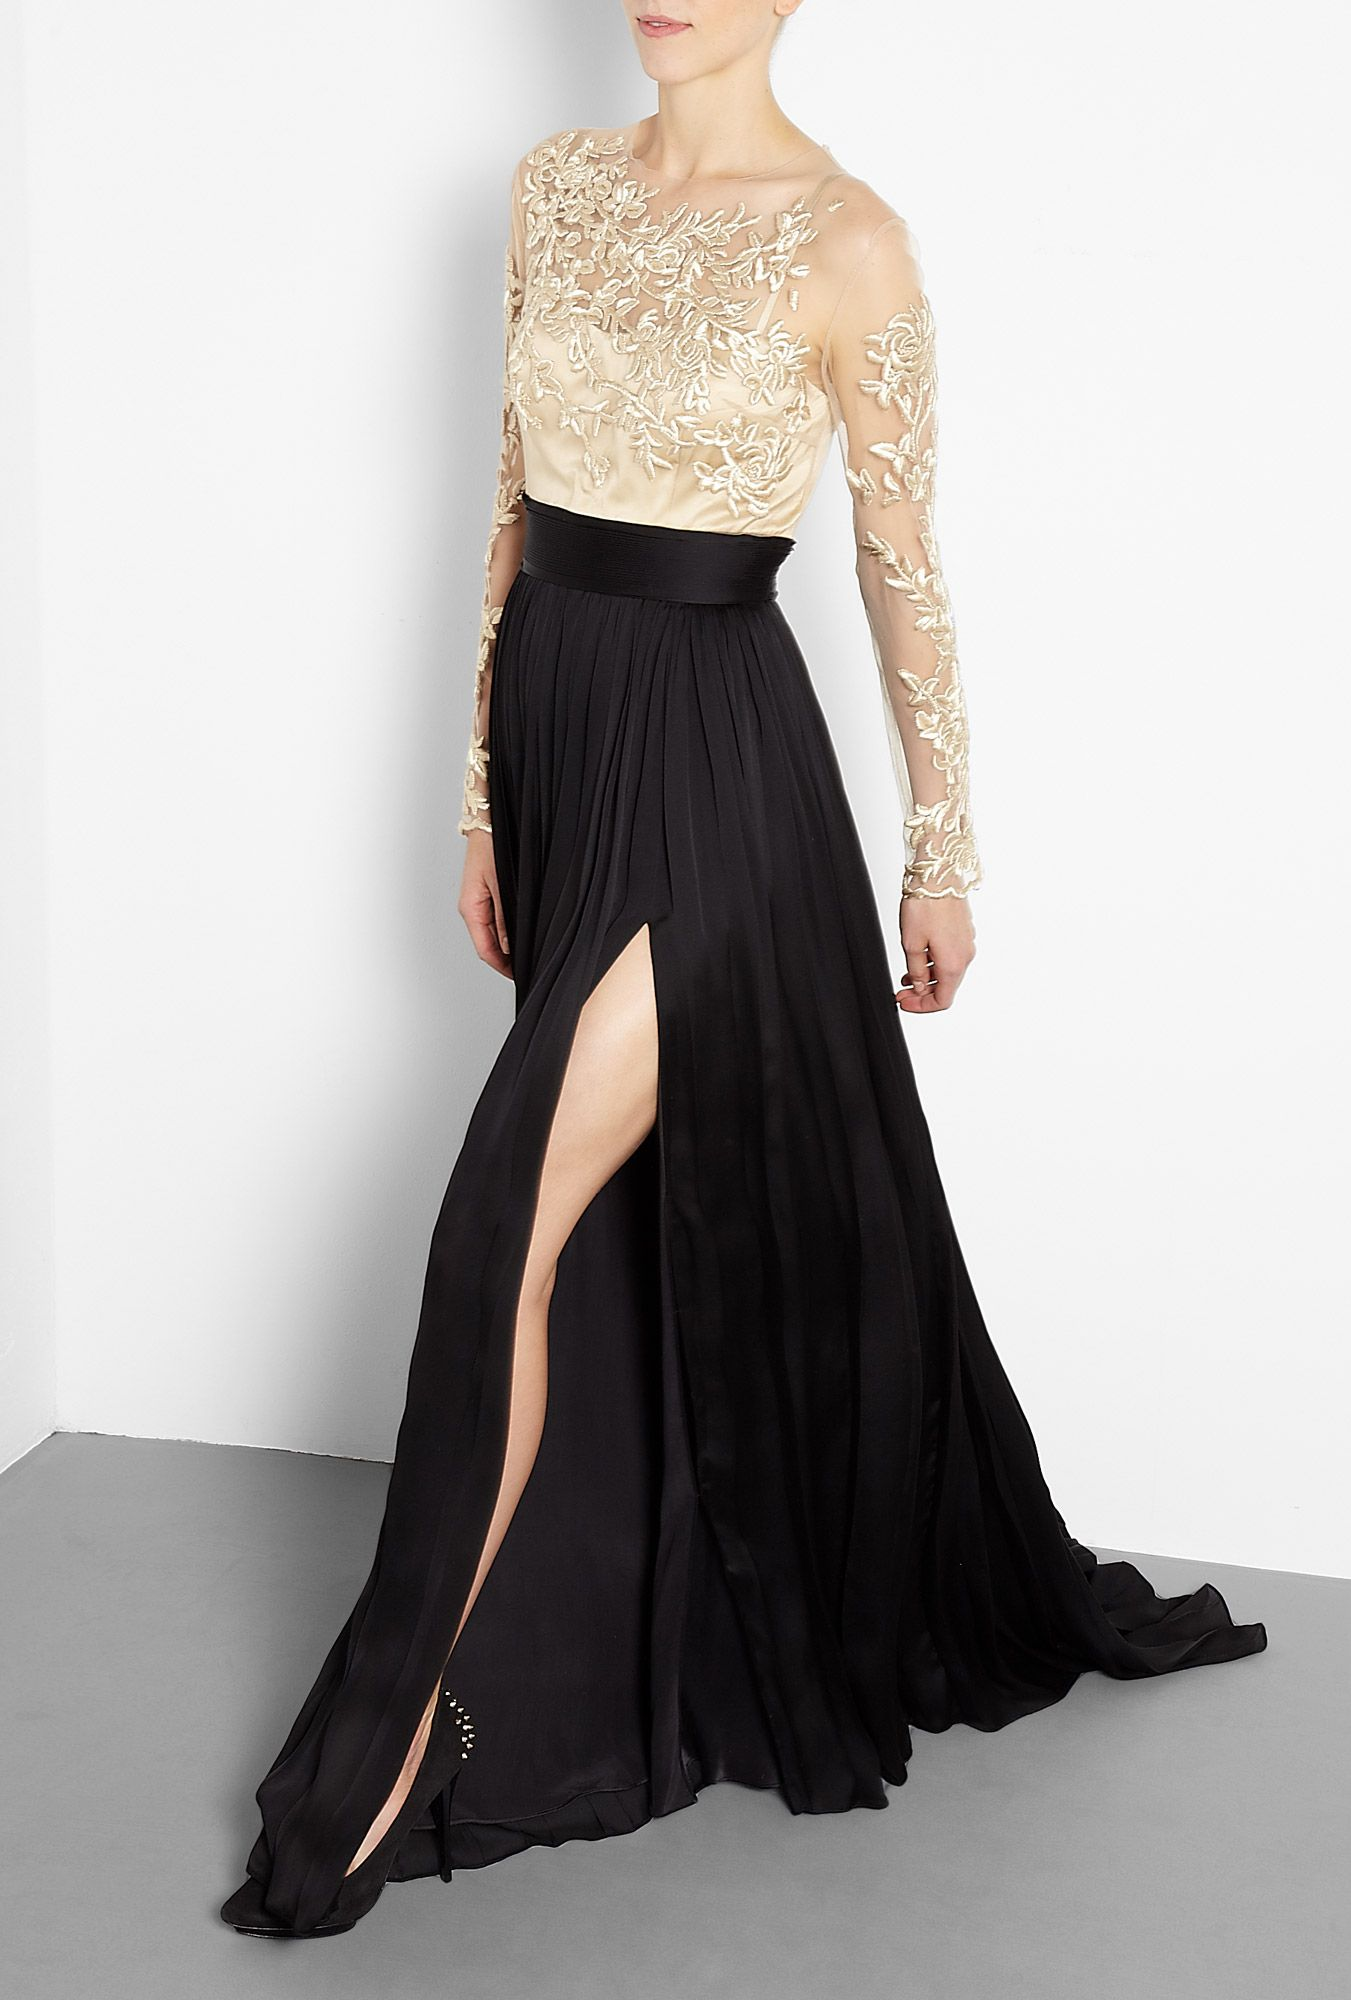 Lala Midi Dress W/ Tiered Tulle Skirt | #Fashion-ivabellini + ...